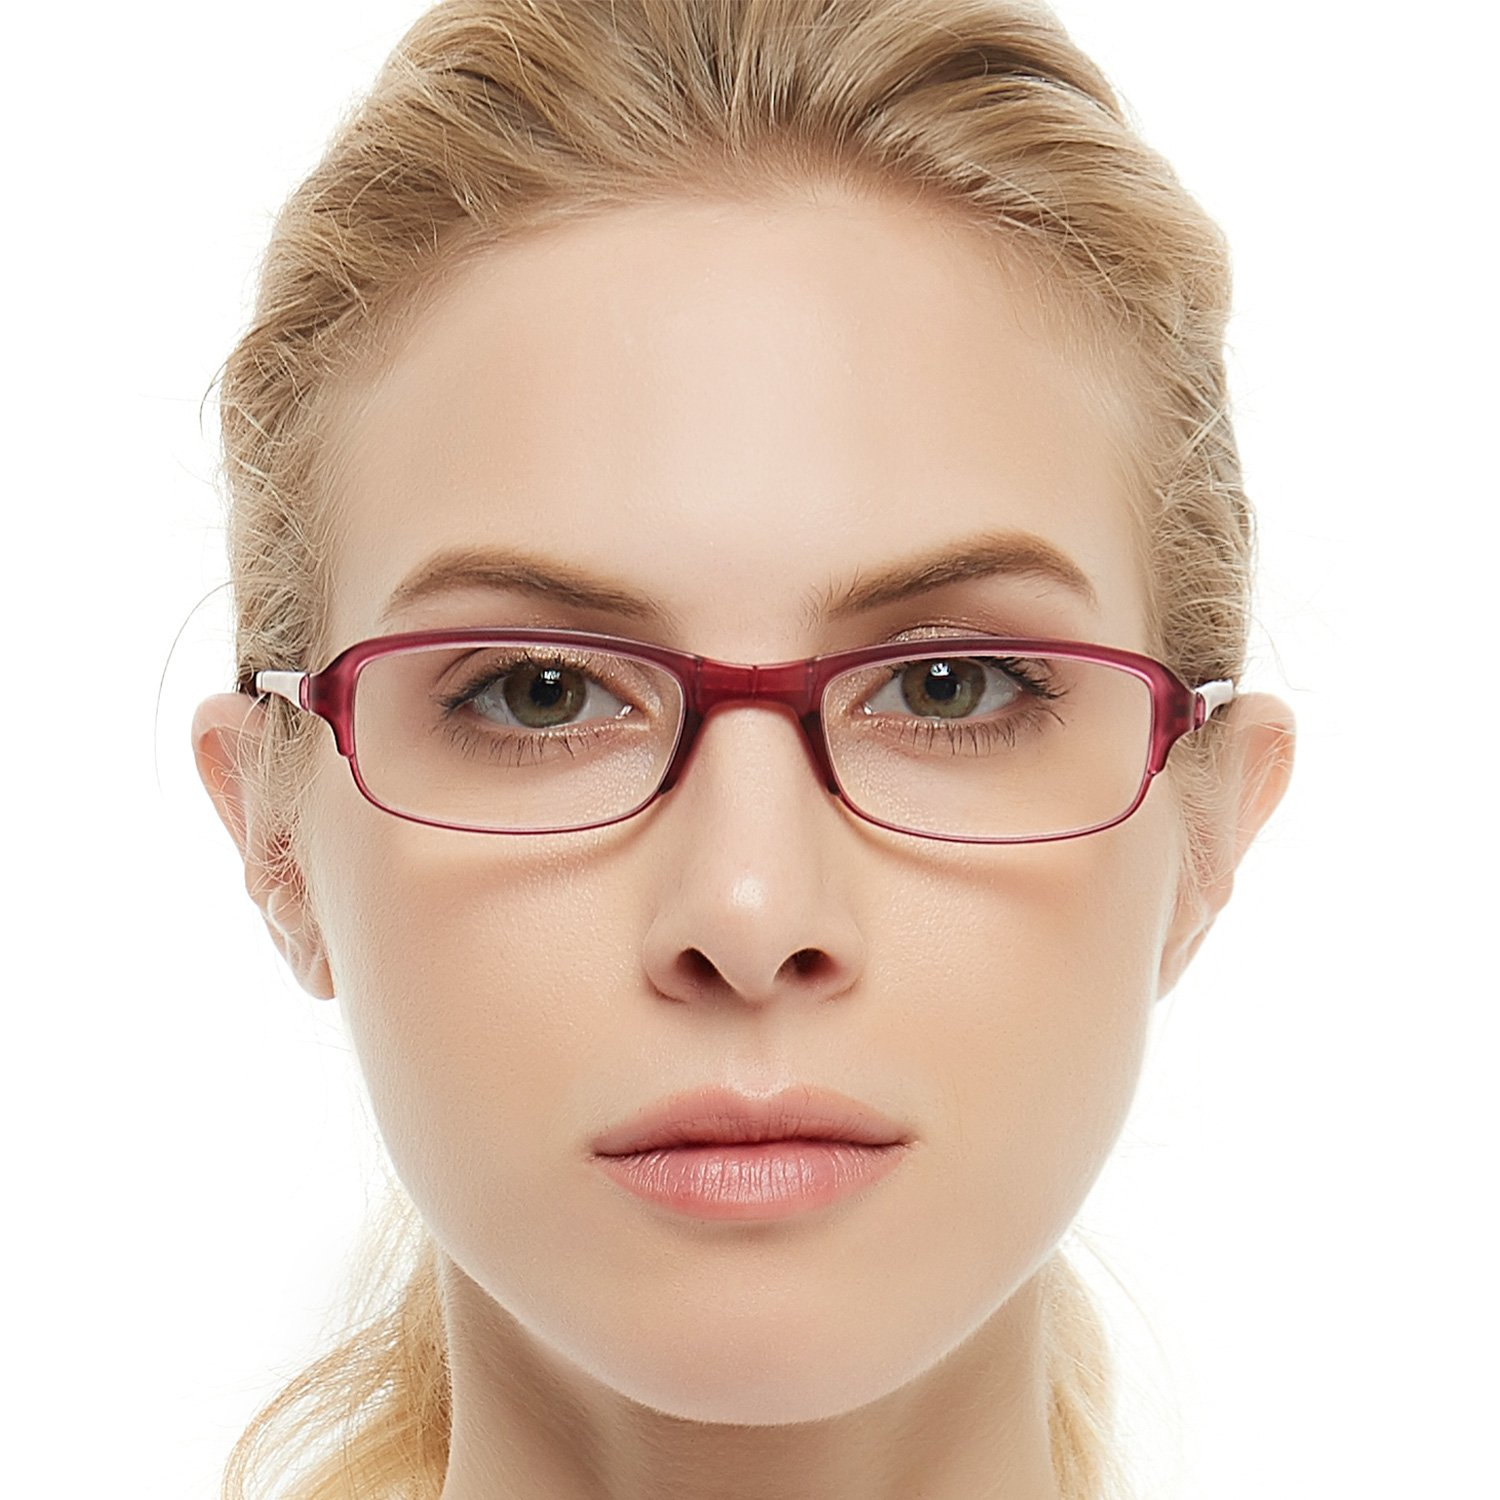 OCCI CHIARI Classic and Thin TR90 Frame Reading Glasses for Men and Wowen 1.5 2.0 2.5 3.0